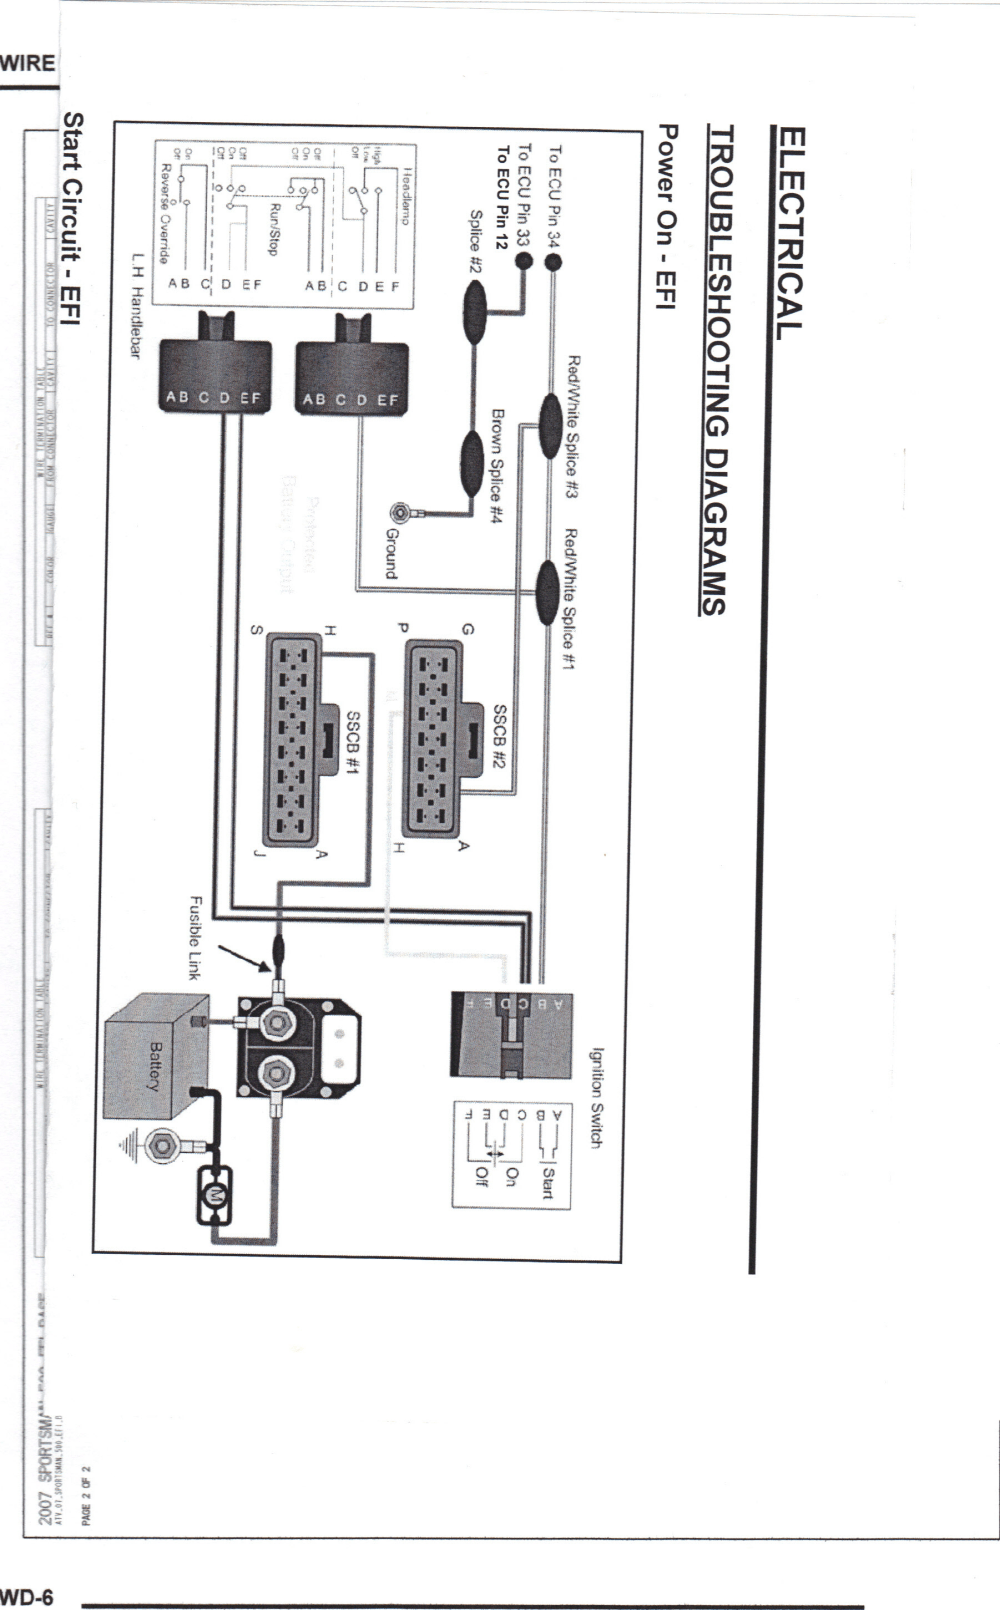 medium resolution of 2005 polaris sportsman 500 ho wiring diagram schematic diagrams rh ogmconsulting co ho ballast wiring diagram